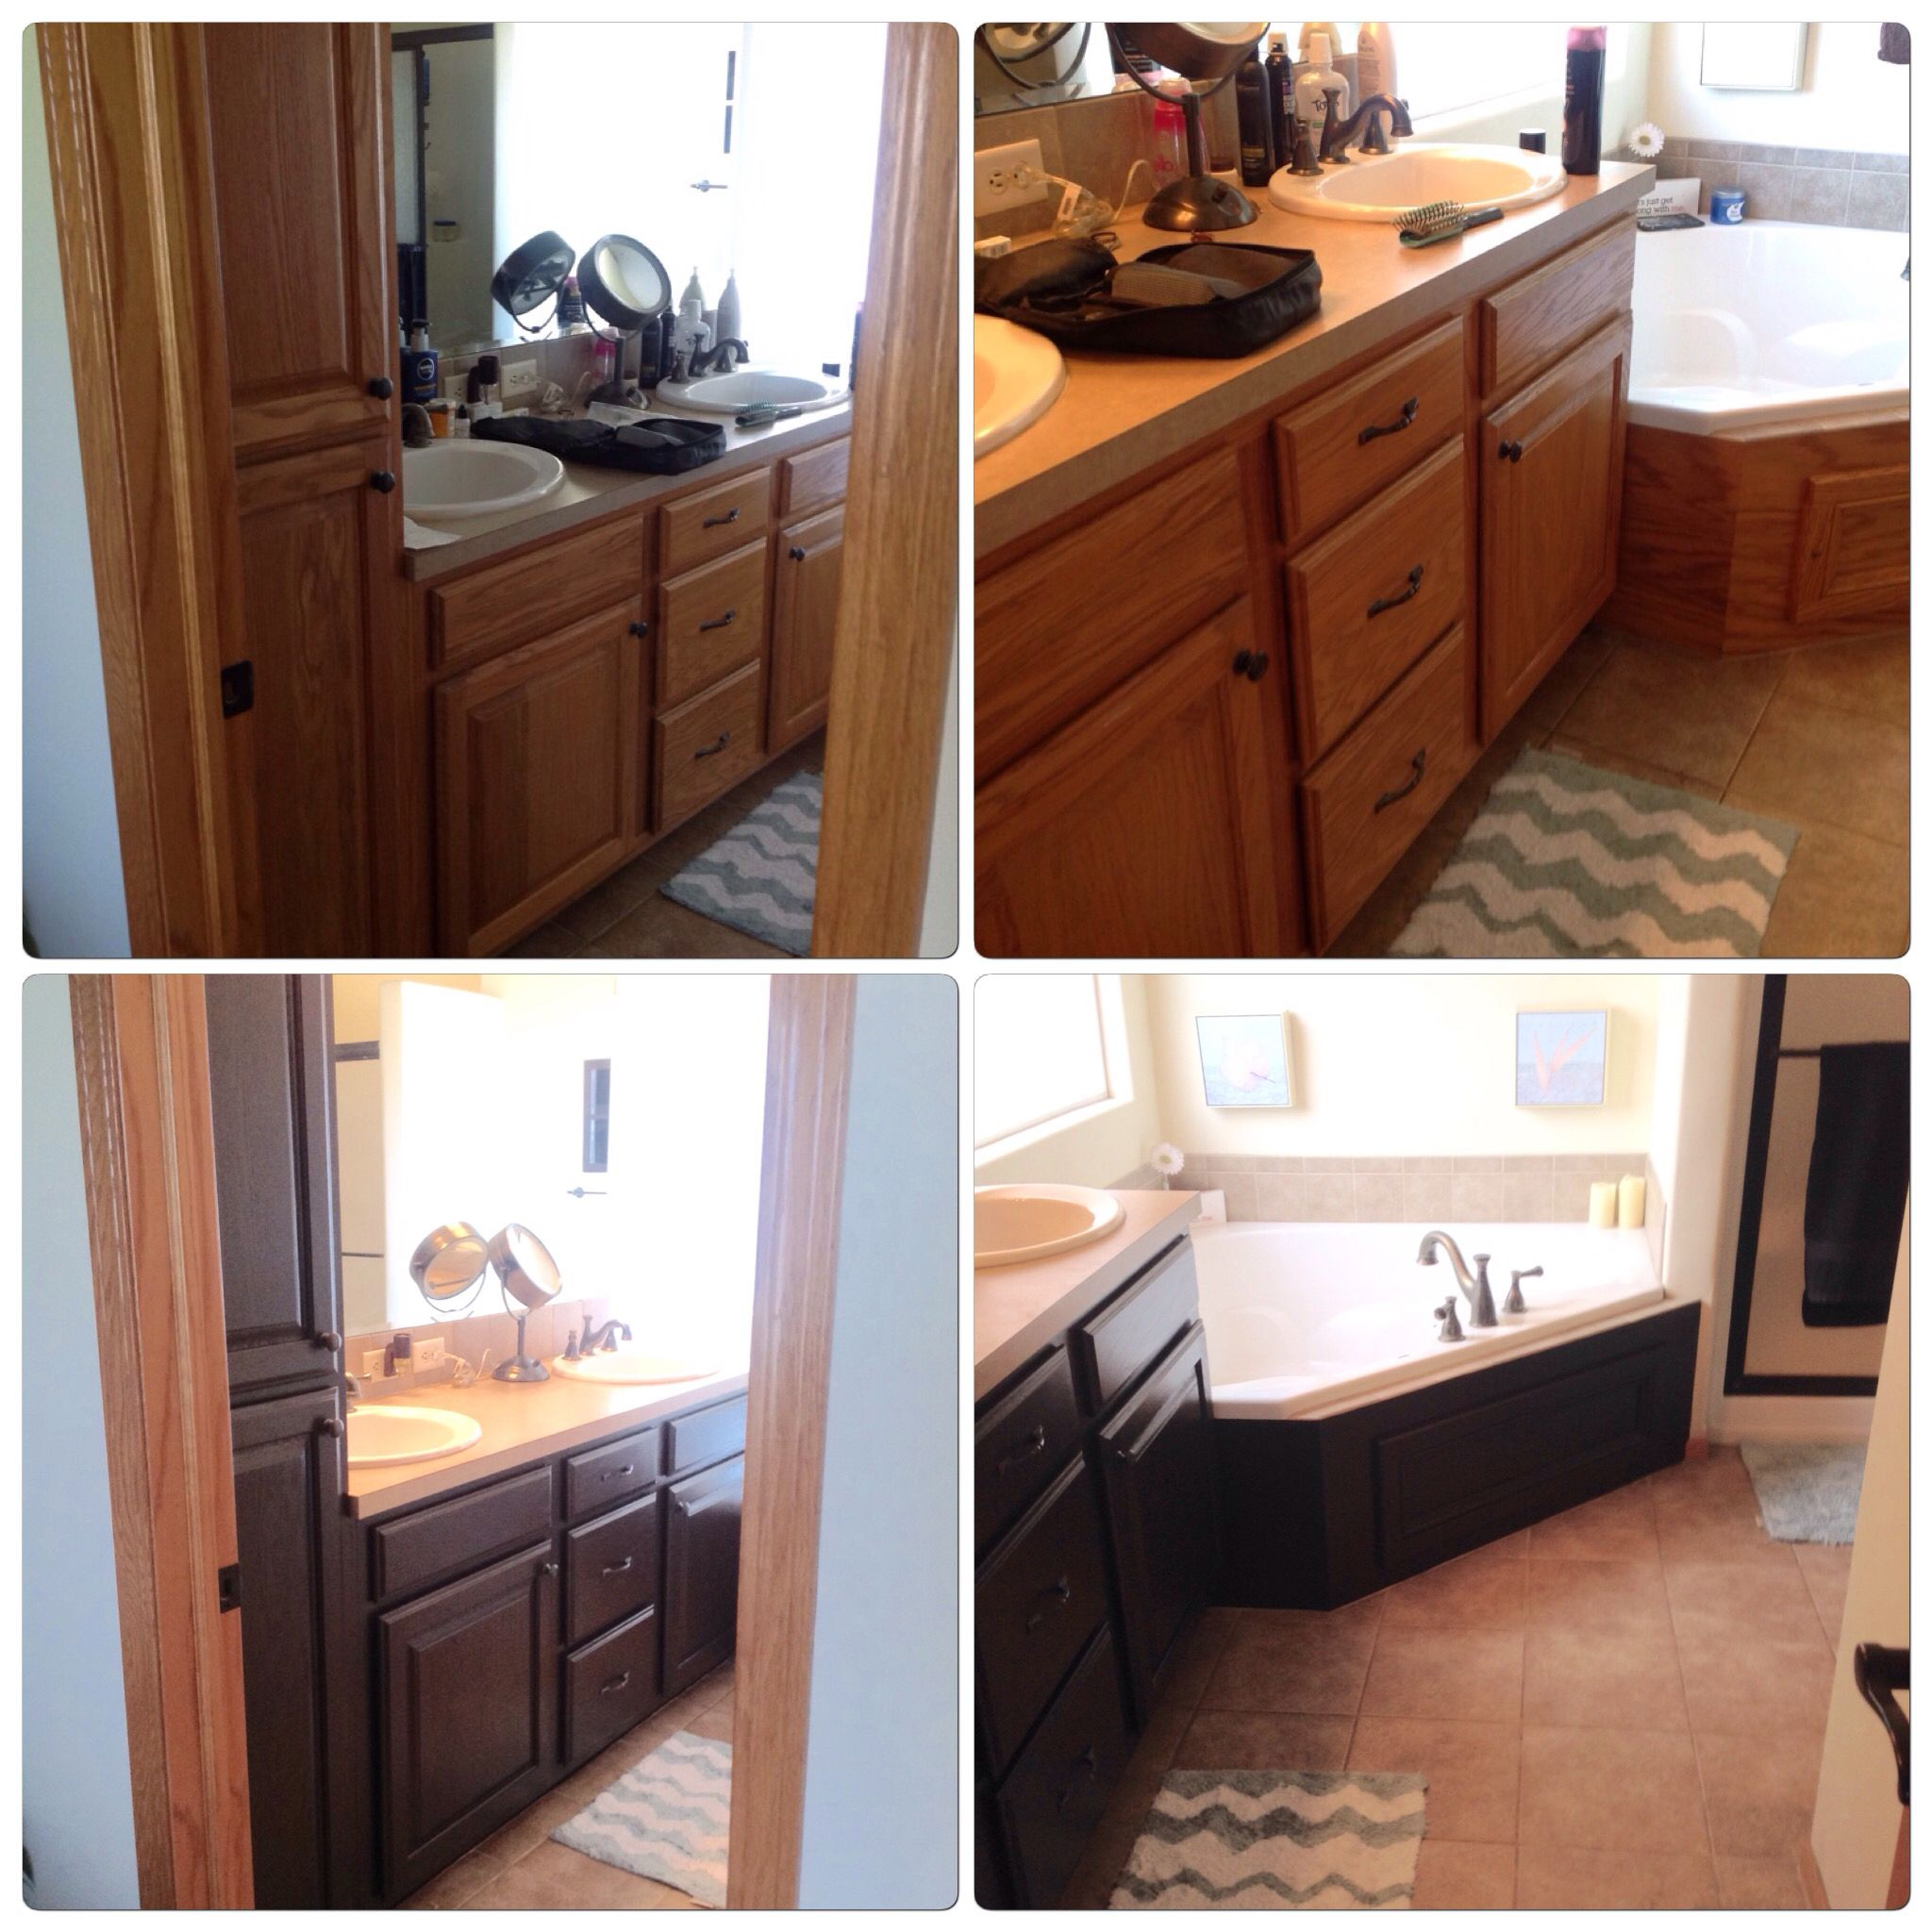 Painted Bathroom Cabinets Paint Is Sherwin Williams Black Bean